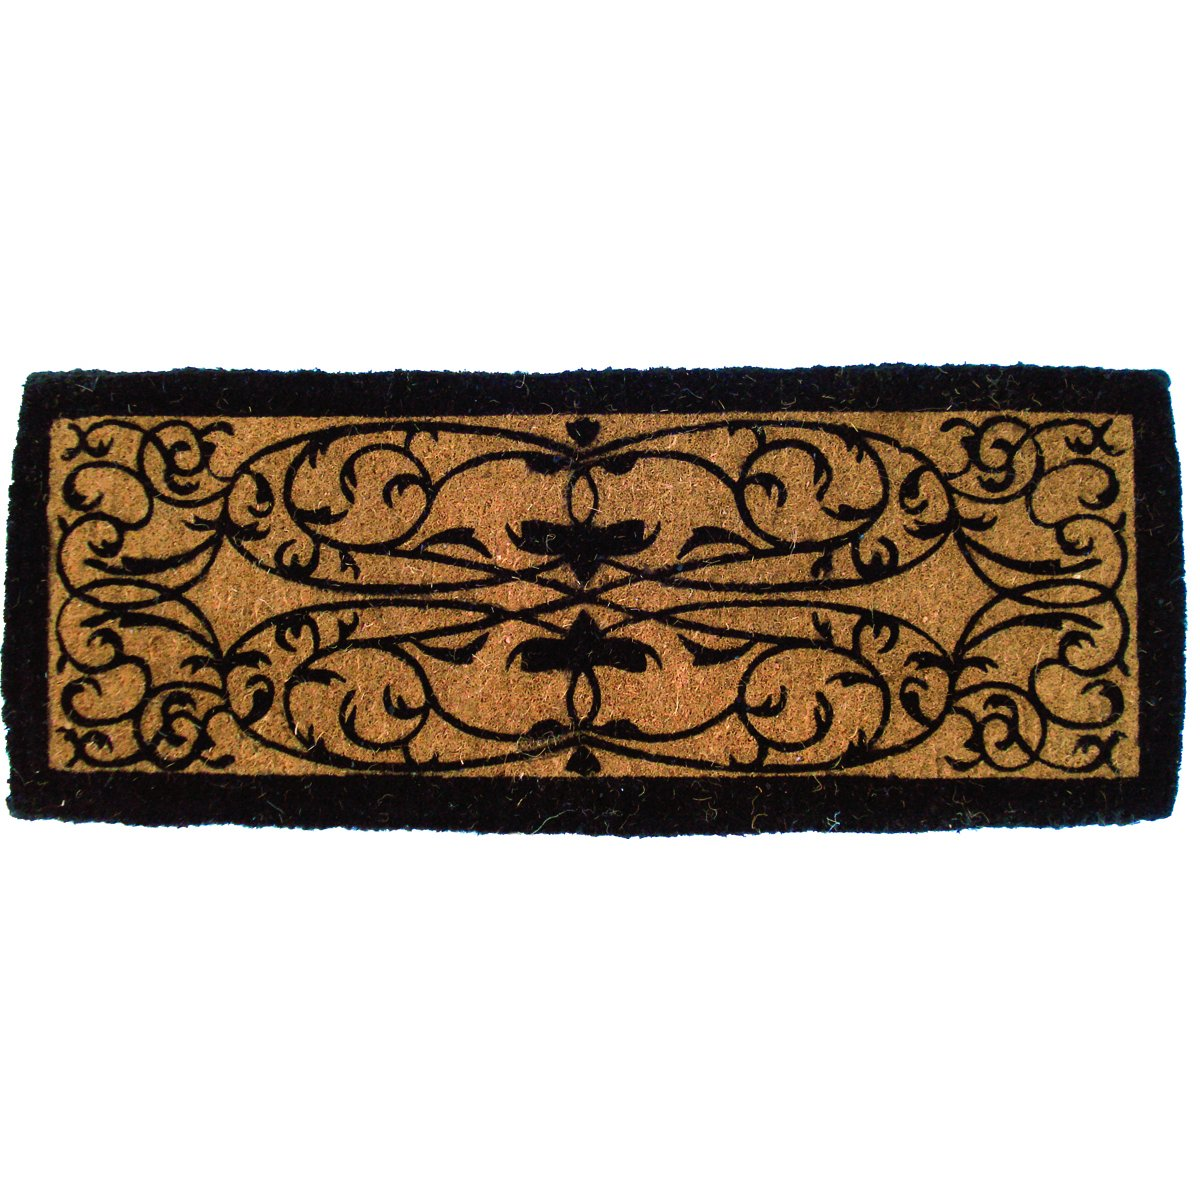 Entryways Iron Gate Border Extra Thick Handmade, Hand-Stenciled, All-Natural Coconut Fiber Coir Doormat 36'' X 72'' X 1.5'' by Entryways